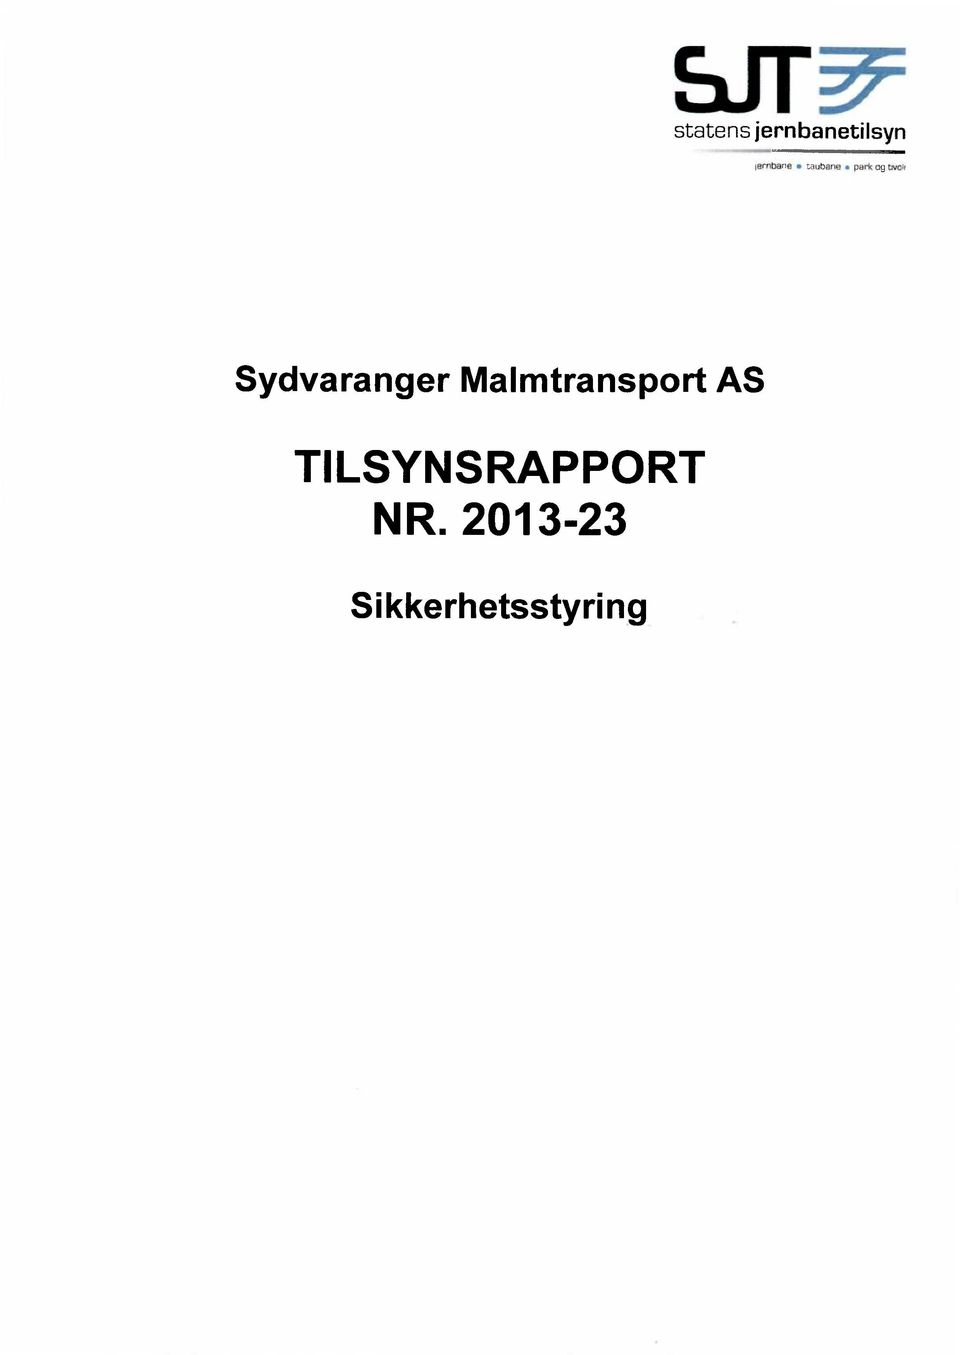 Sydvaranger Malmtransport AS